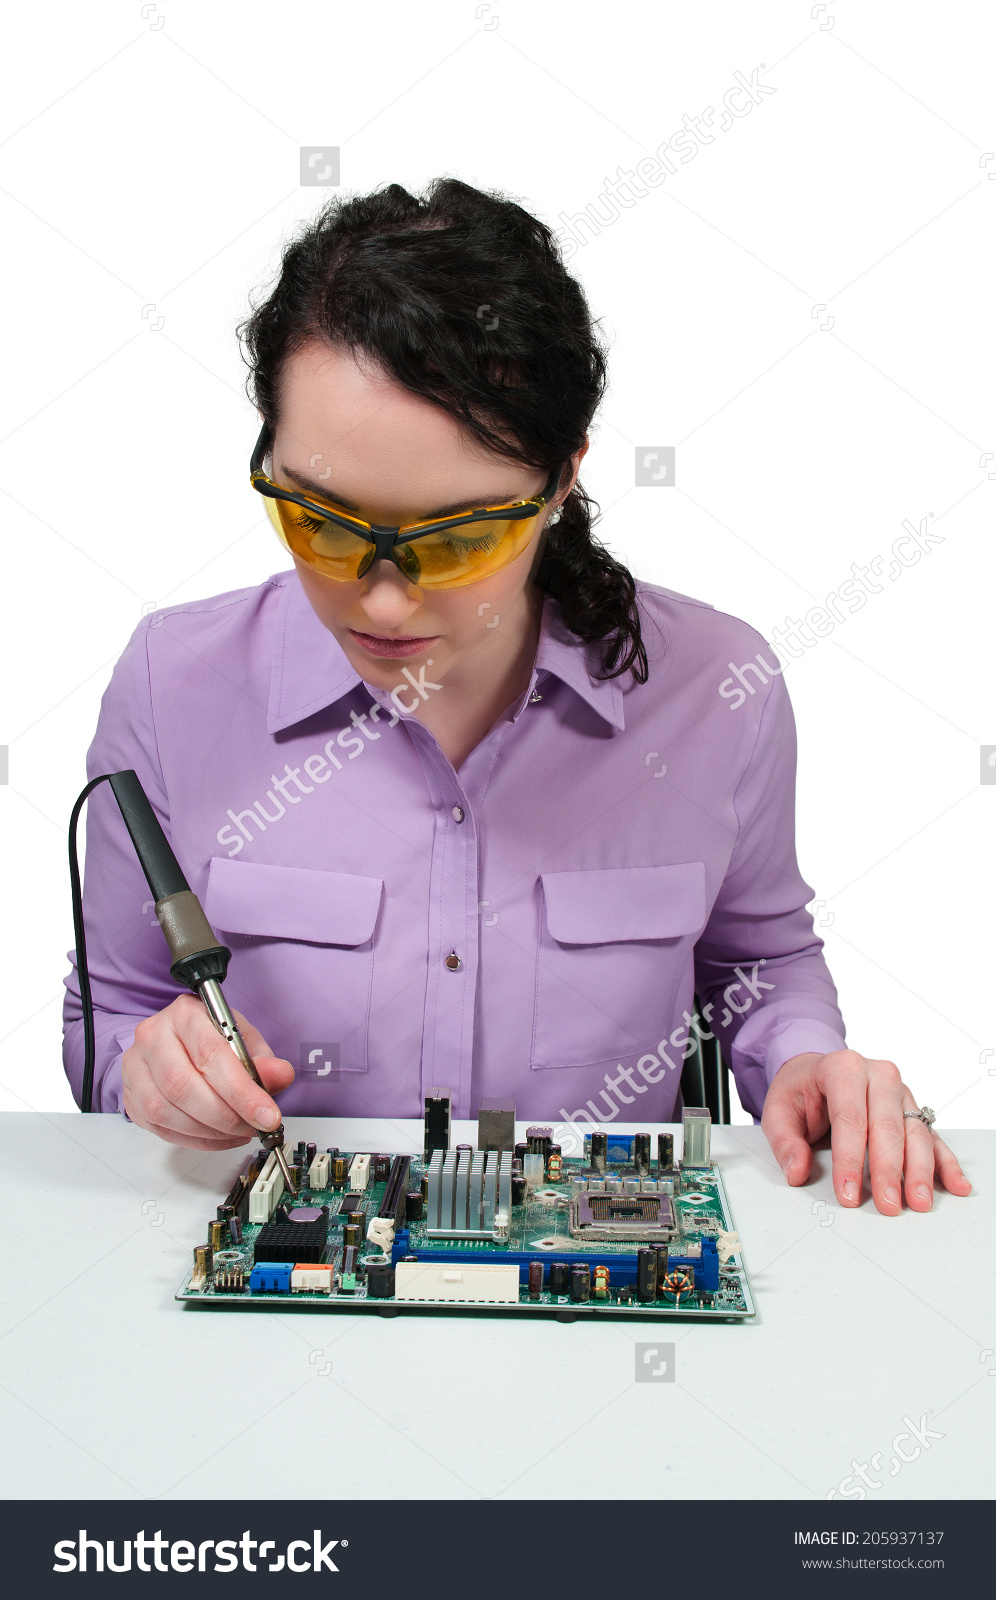 http://image.shutterstock.com/z/stock-photo-beautiful-woman-repair-soldering-a-printed-circuit-board-205937137.jpg